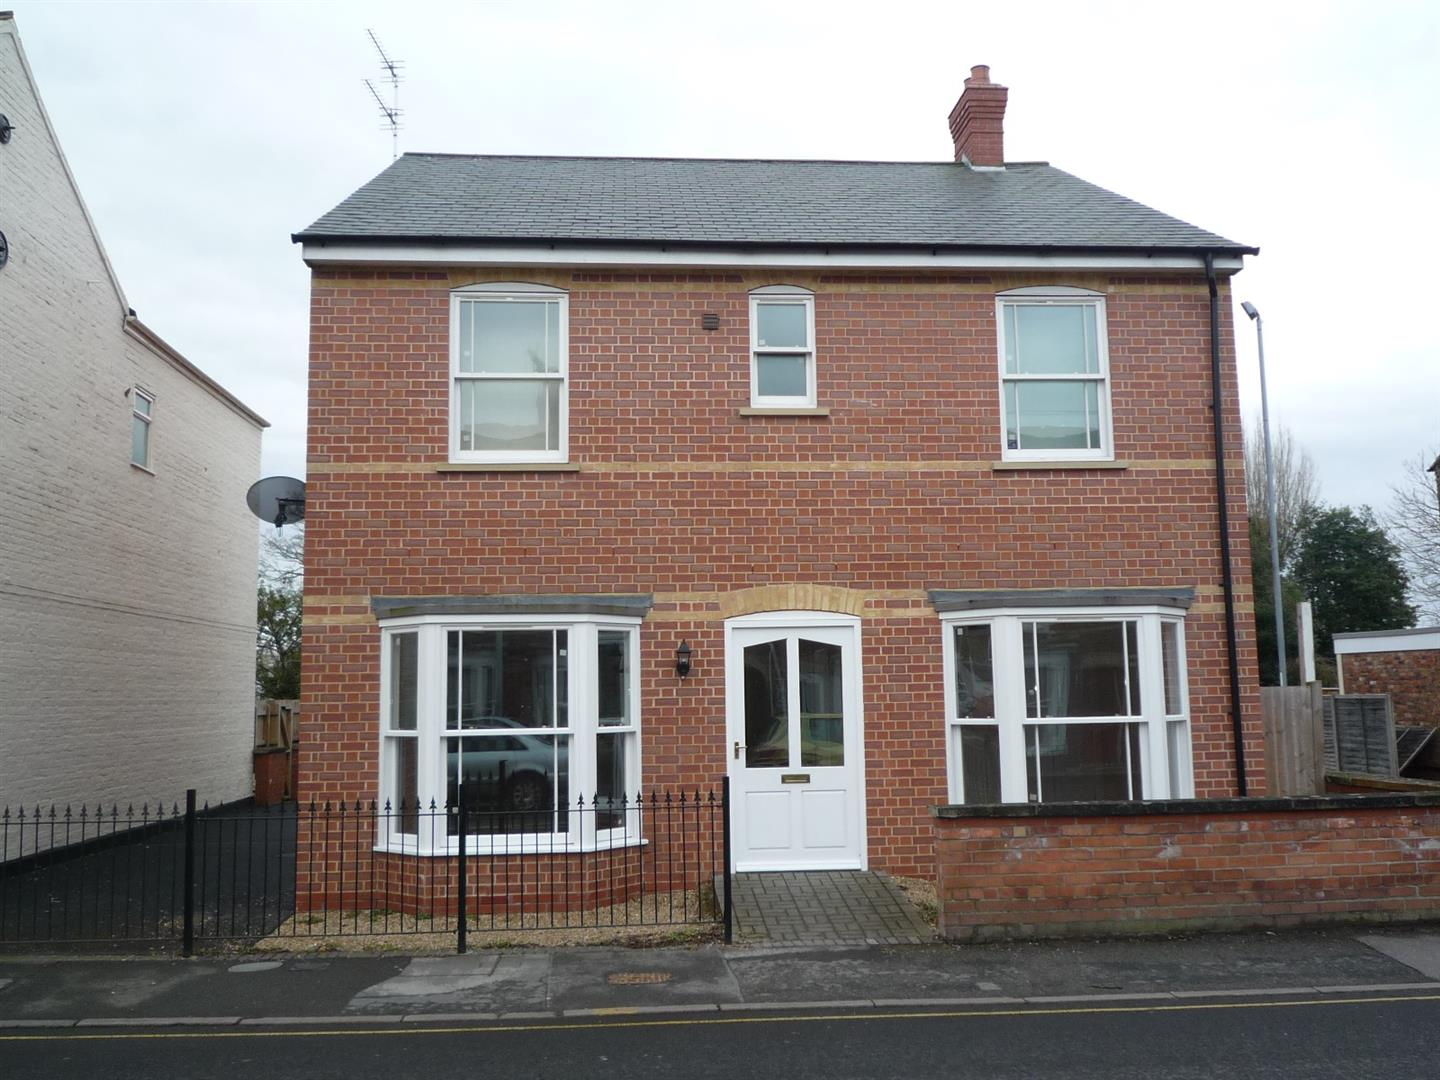 1 bed flat to rent in Long Sutton Spalding, PE12 9BN  - Property Image 1